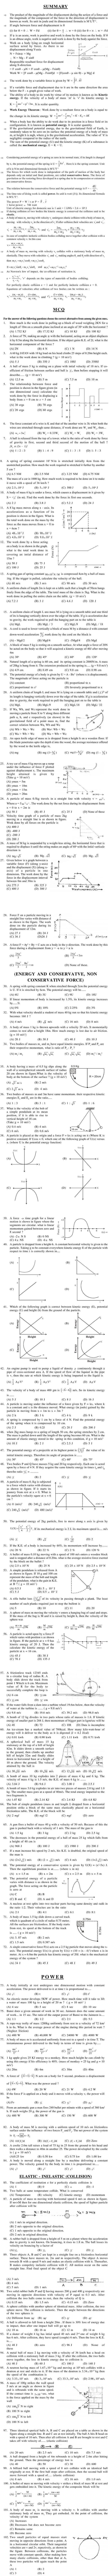 Physics Question Bank for Entrance Exam Work Energy and Power – Work Energy and Power Worksheet Answers